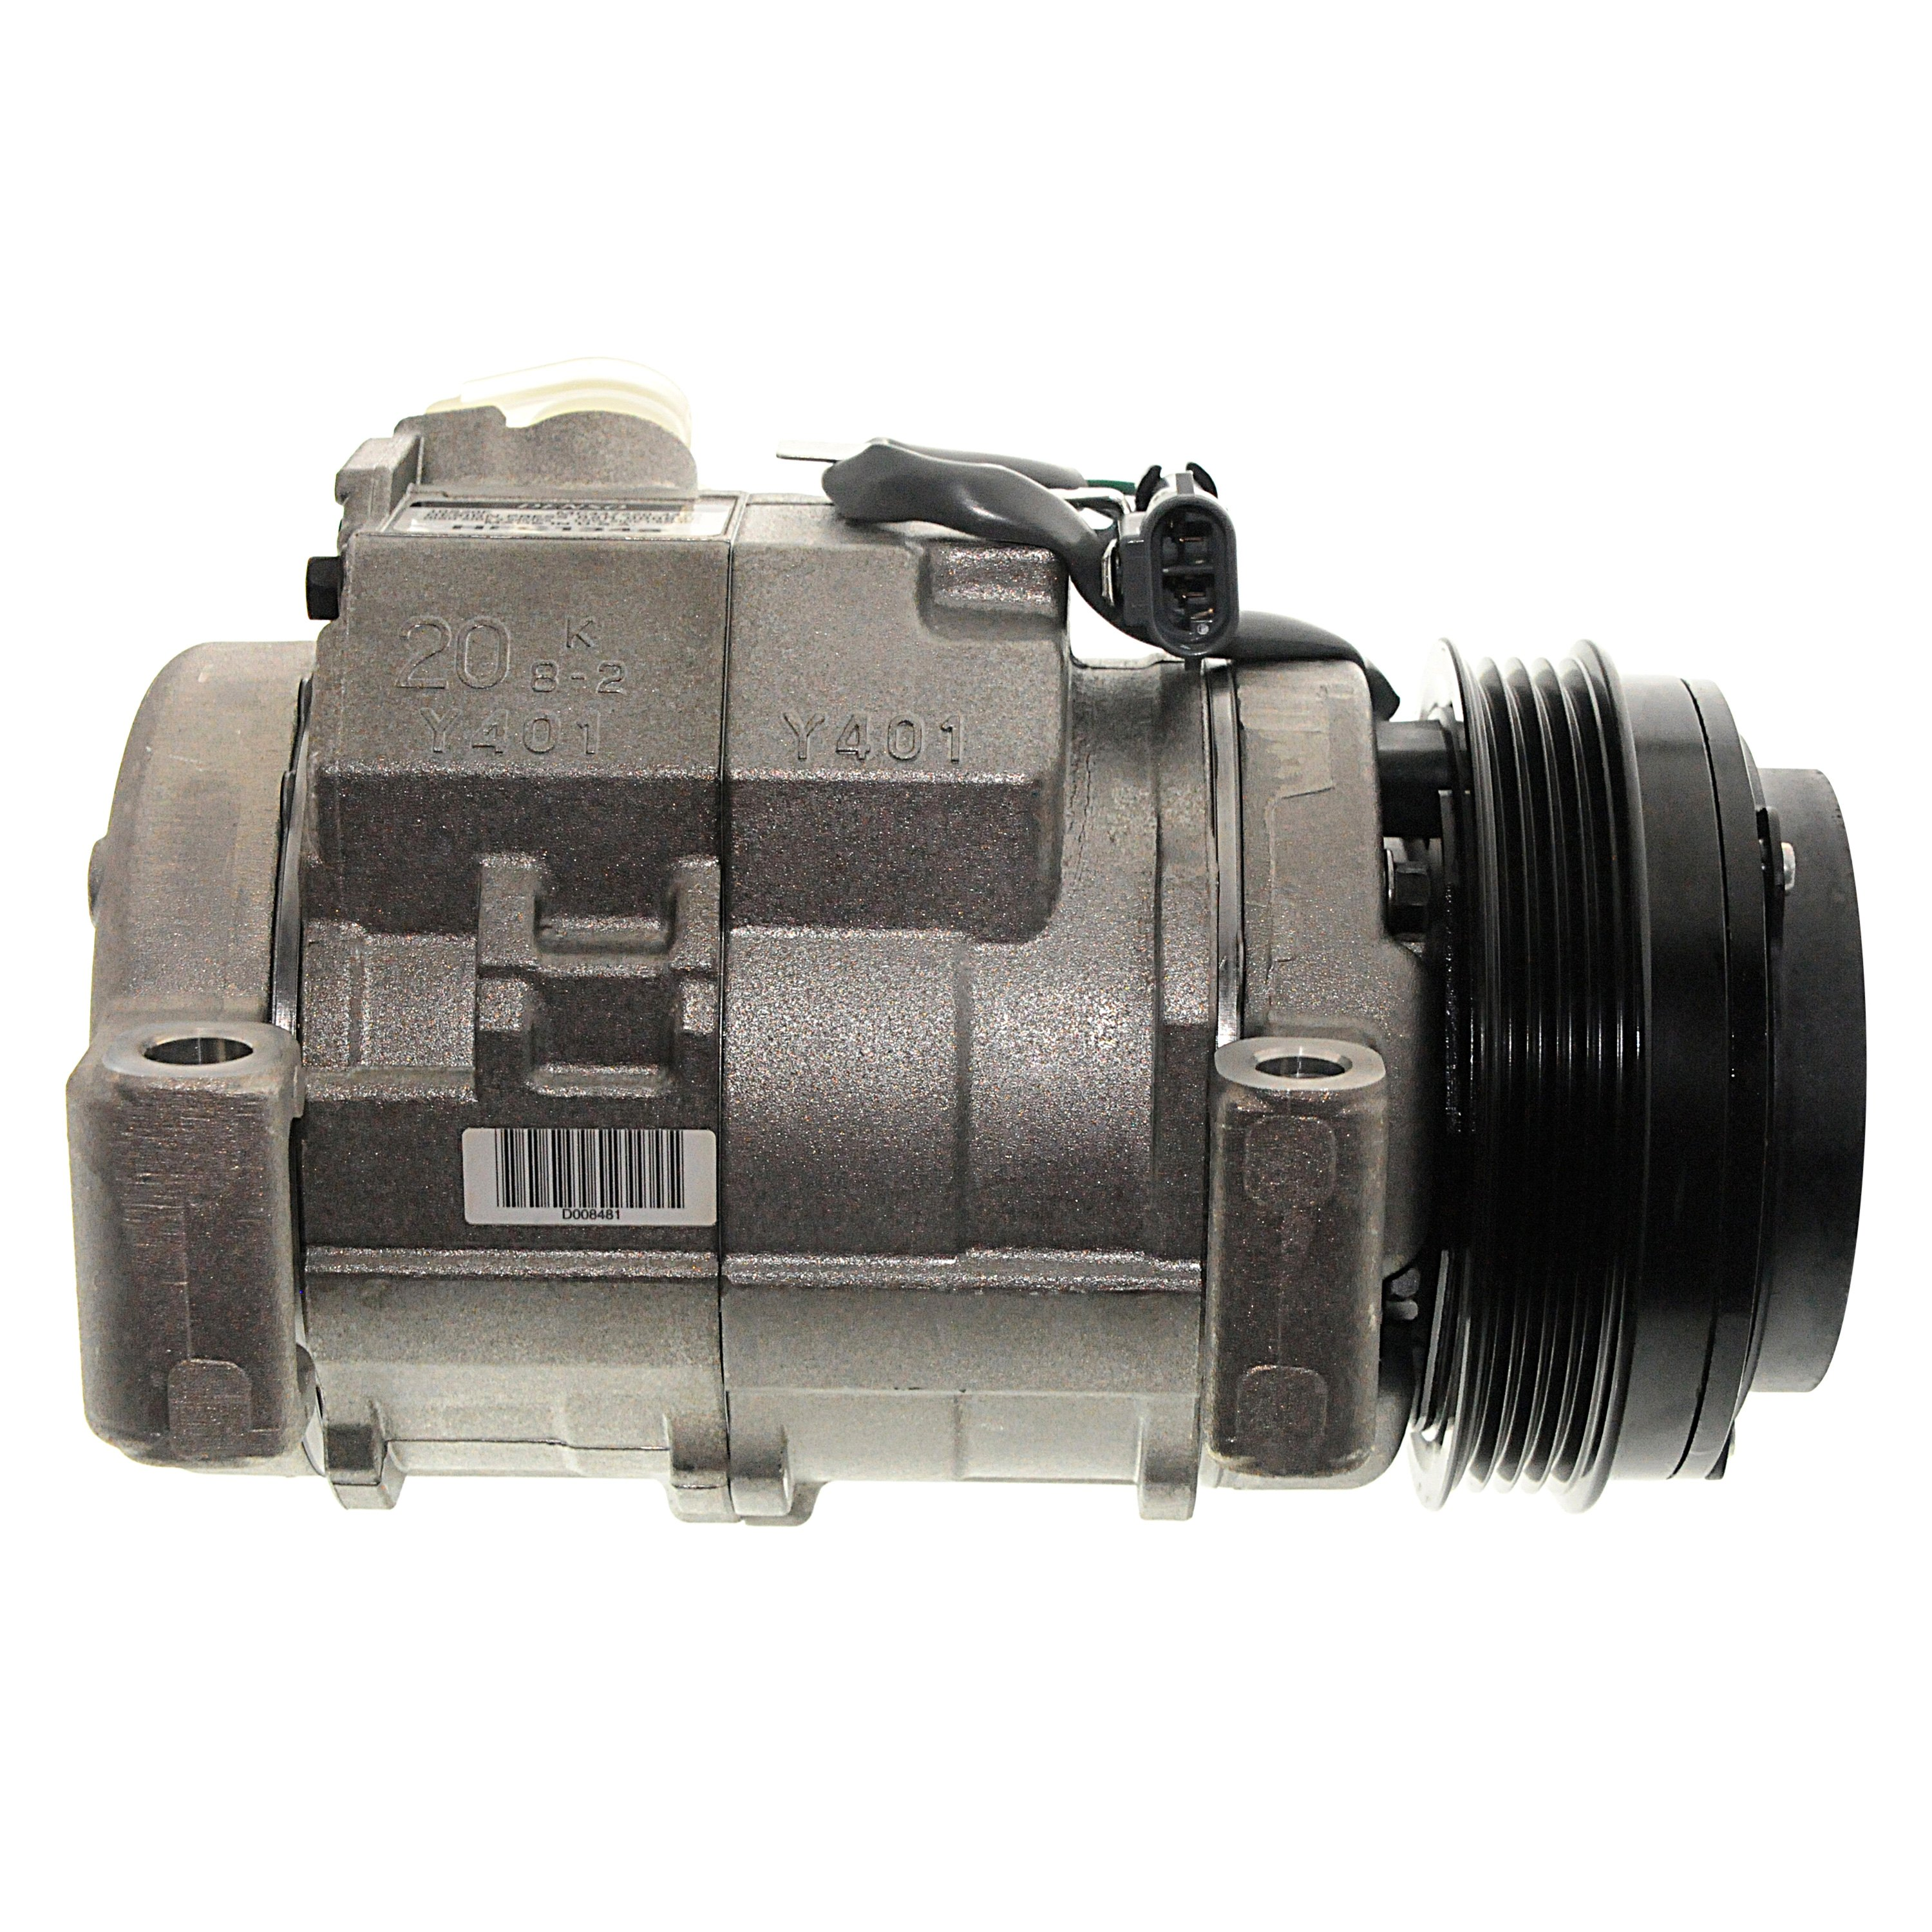 ACDelco 15-20941 GM Original Equipment Air Conditioning Compressor and Clutch Assembly